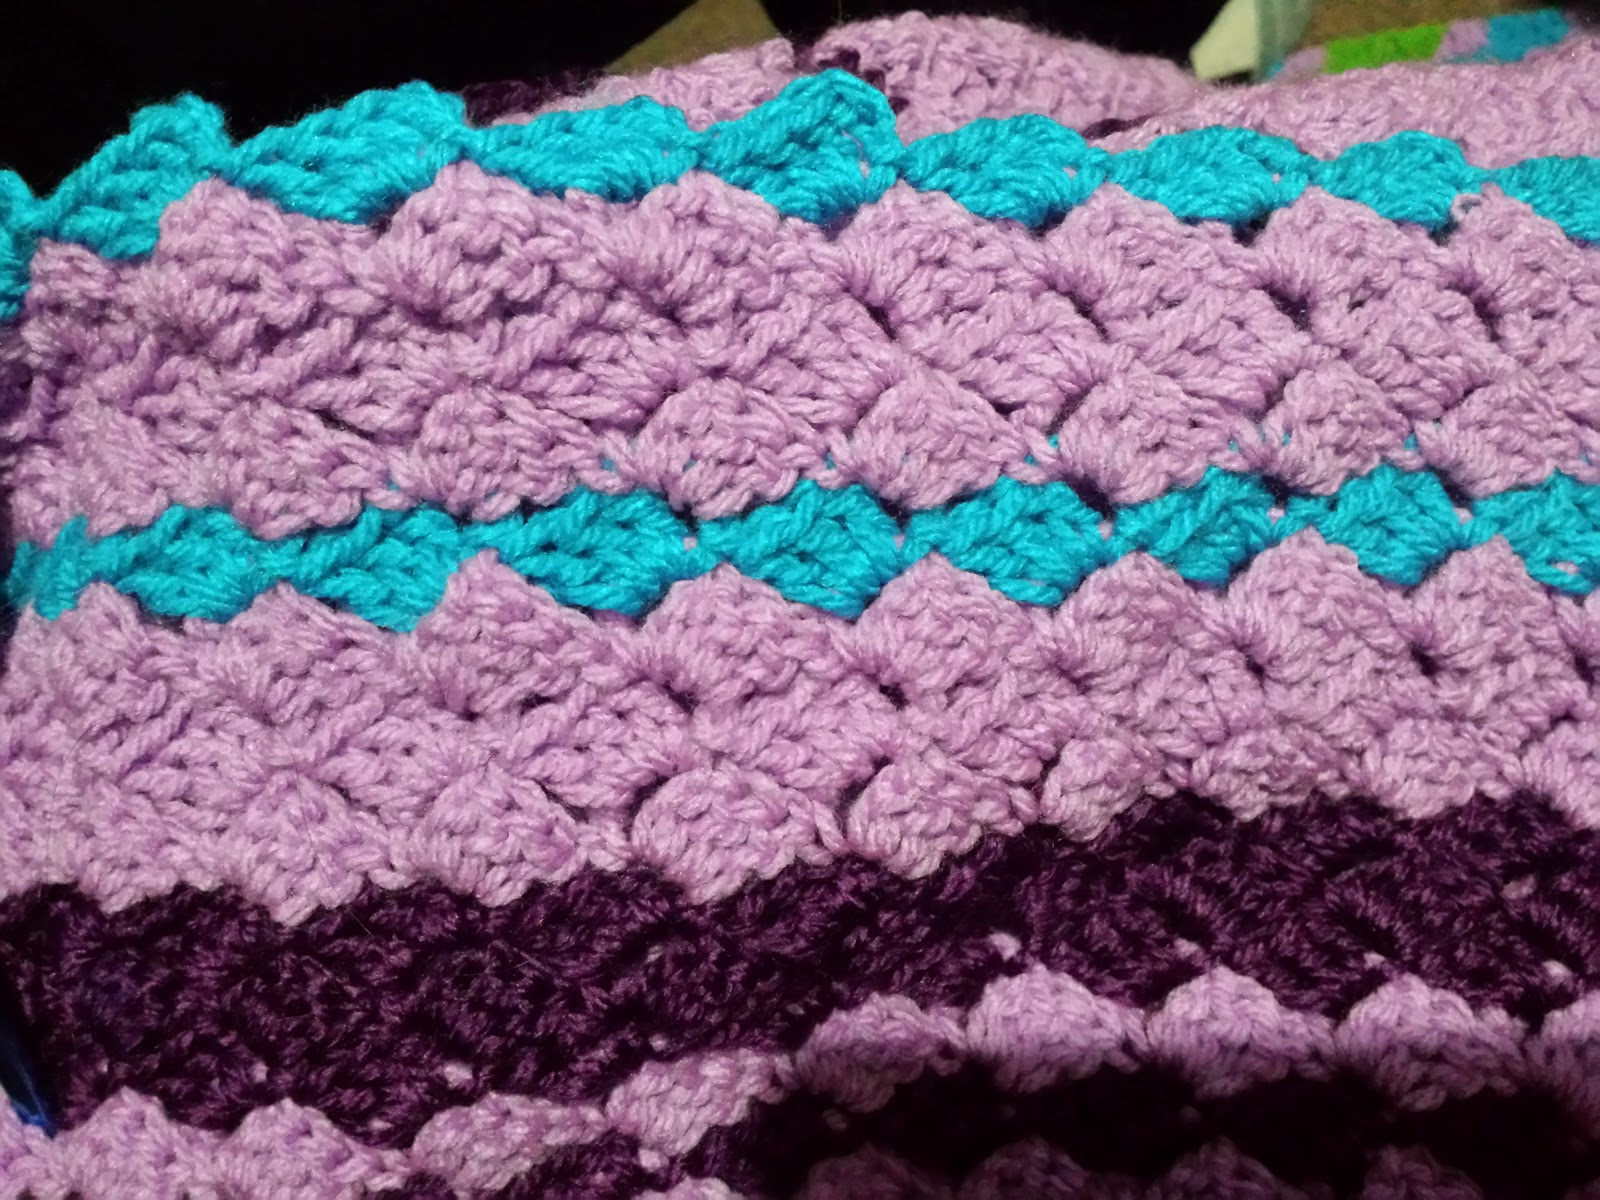 Crochet Temperature Blanket : Blooming Lovely: WIP - Crochet - Temperature Blanket - Week 29